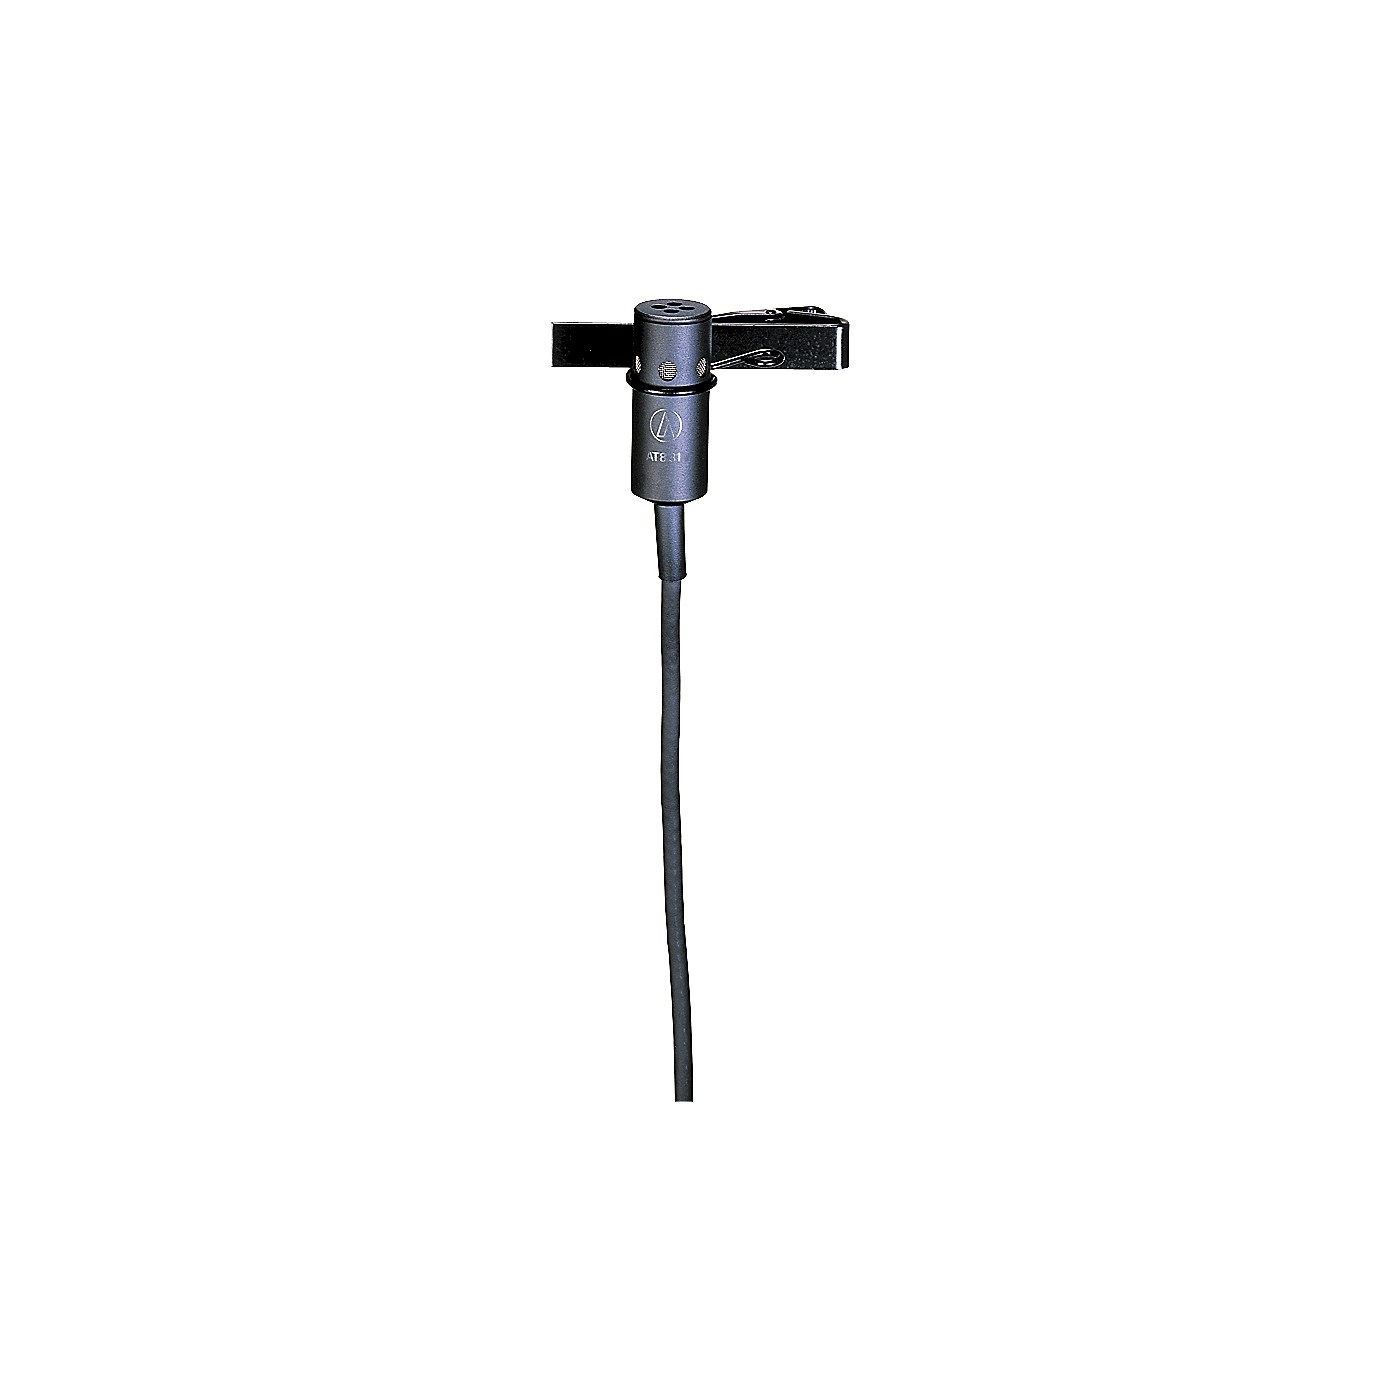 Audio-Technica AT831R Cardioid Condenser Lavalier Microphone thumbnail